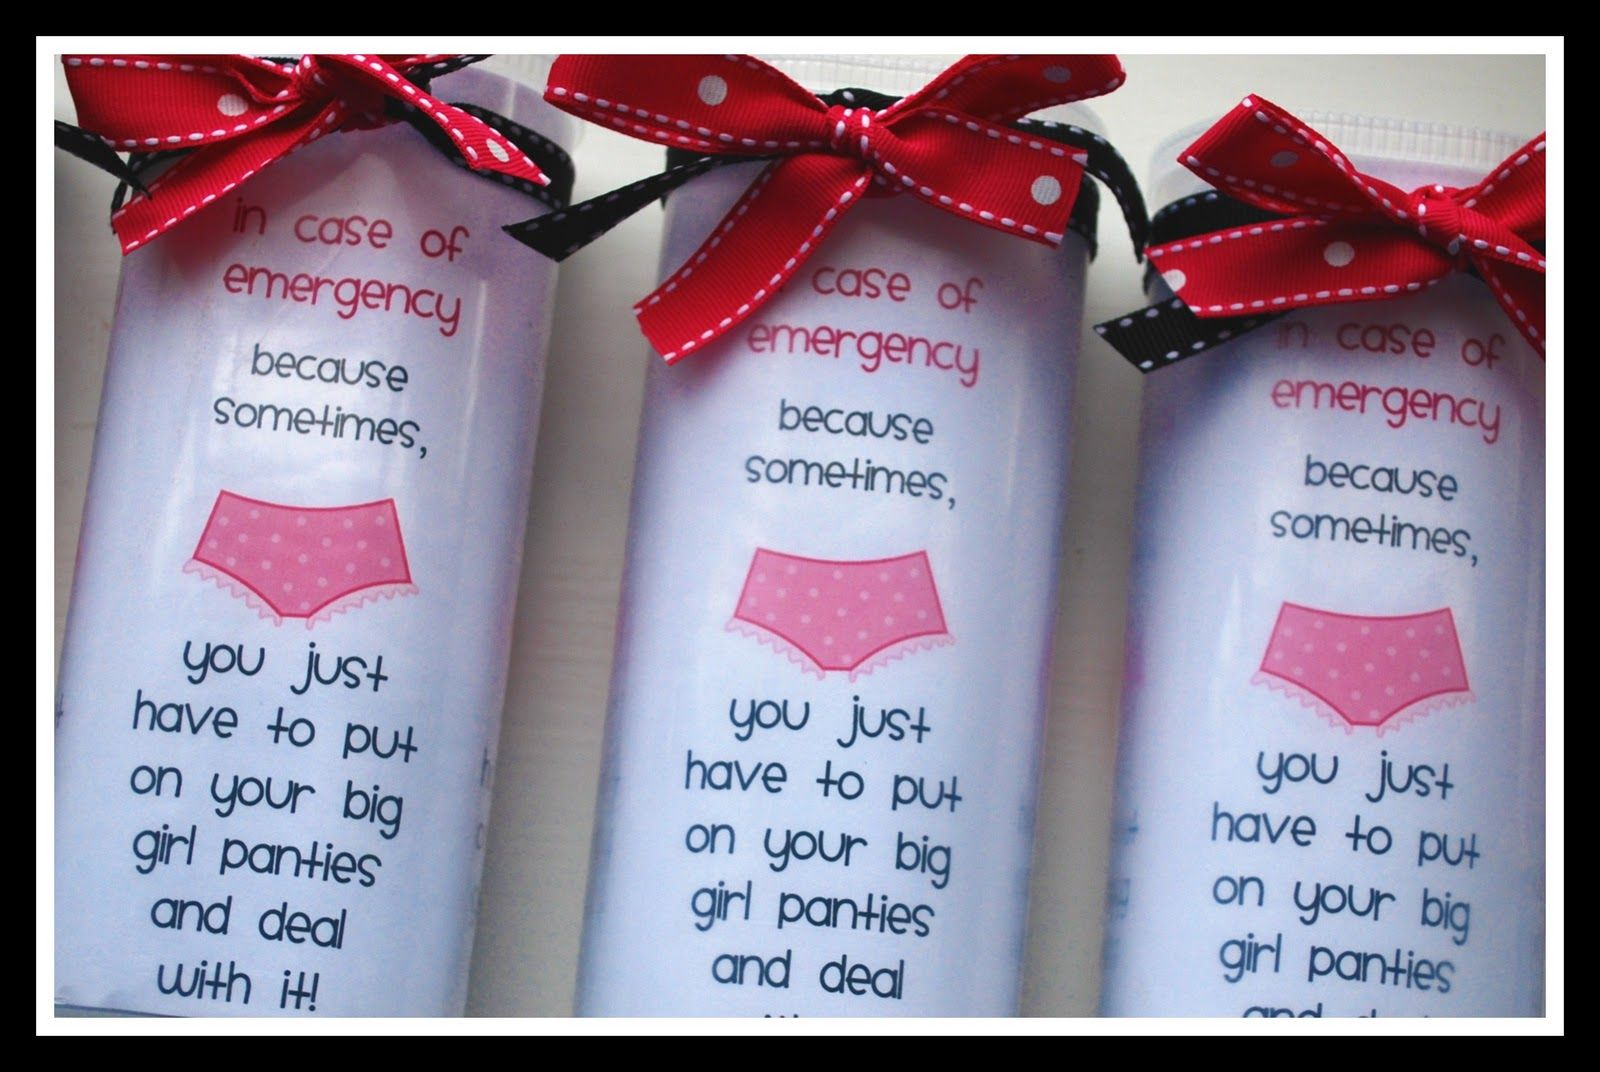 Cheri....your Favorite Saying! What An Awesome Crafty Gag